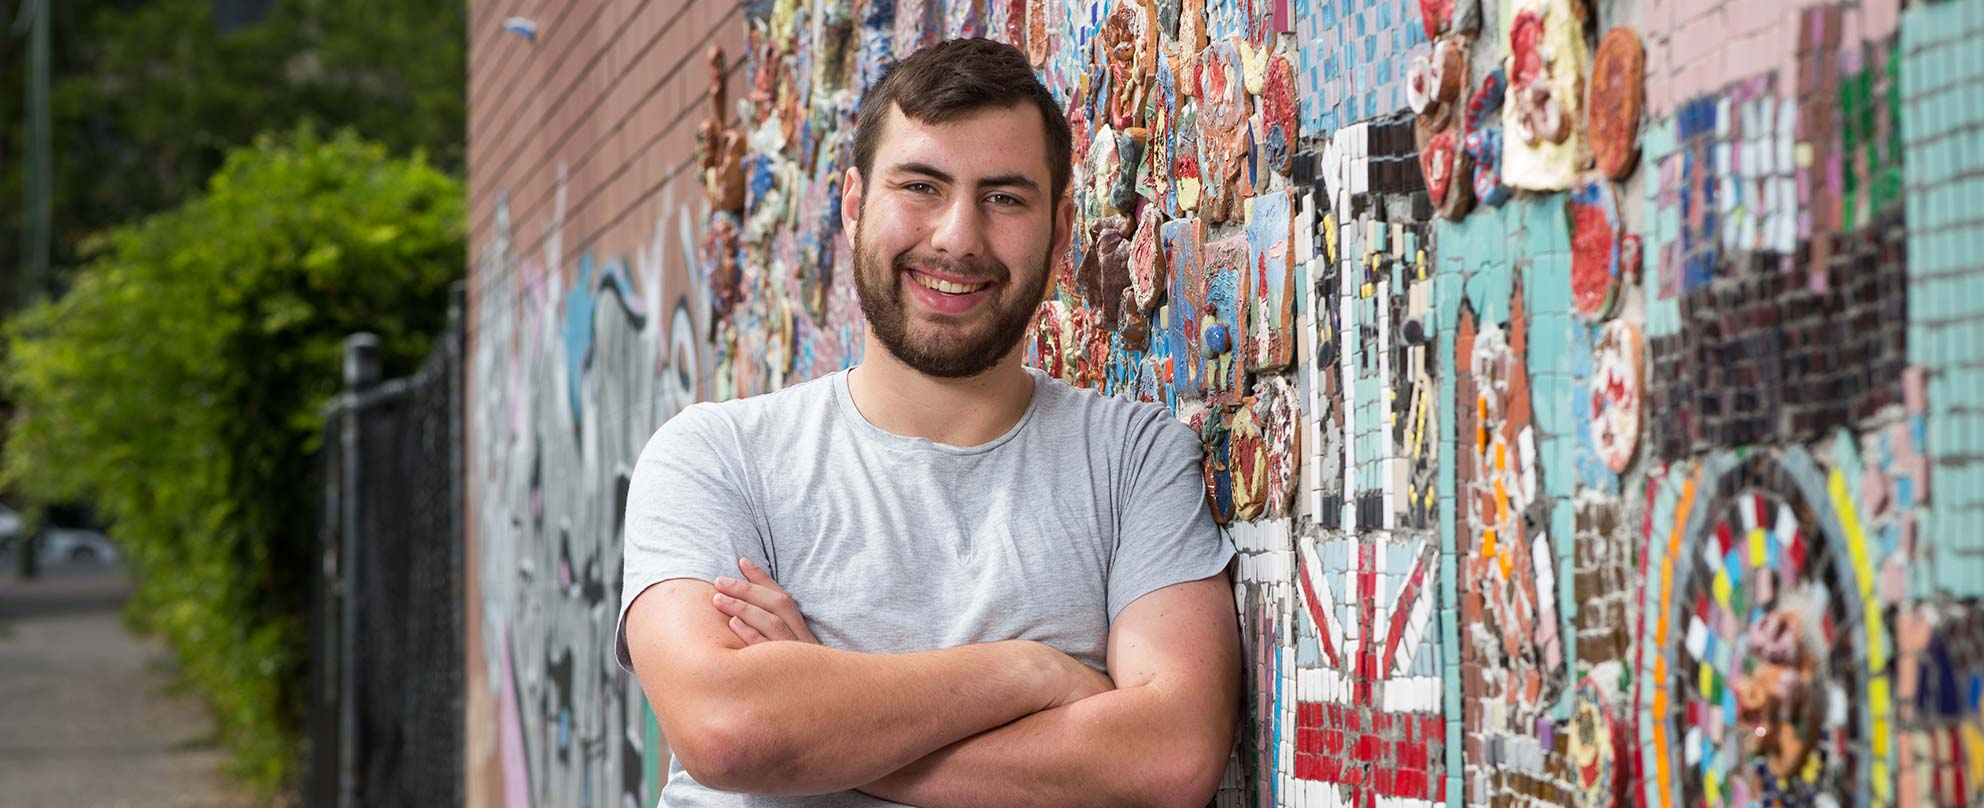 Photo of smiling young man with short brown hair and cropped brown beard, wearing a grey T-shirt, leaning, arms folded, against a brick wall with colourful mosaics adhered to it, a path and trees in the background.